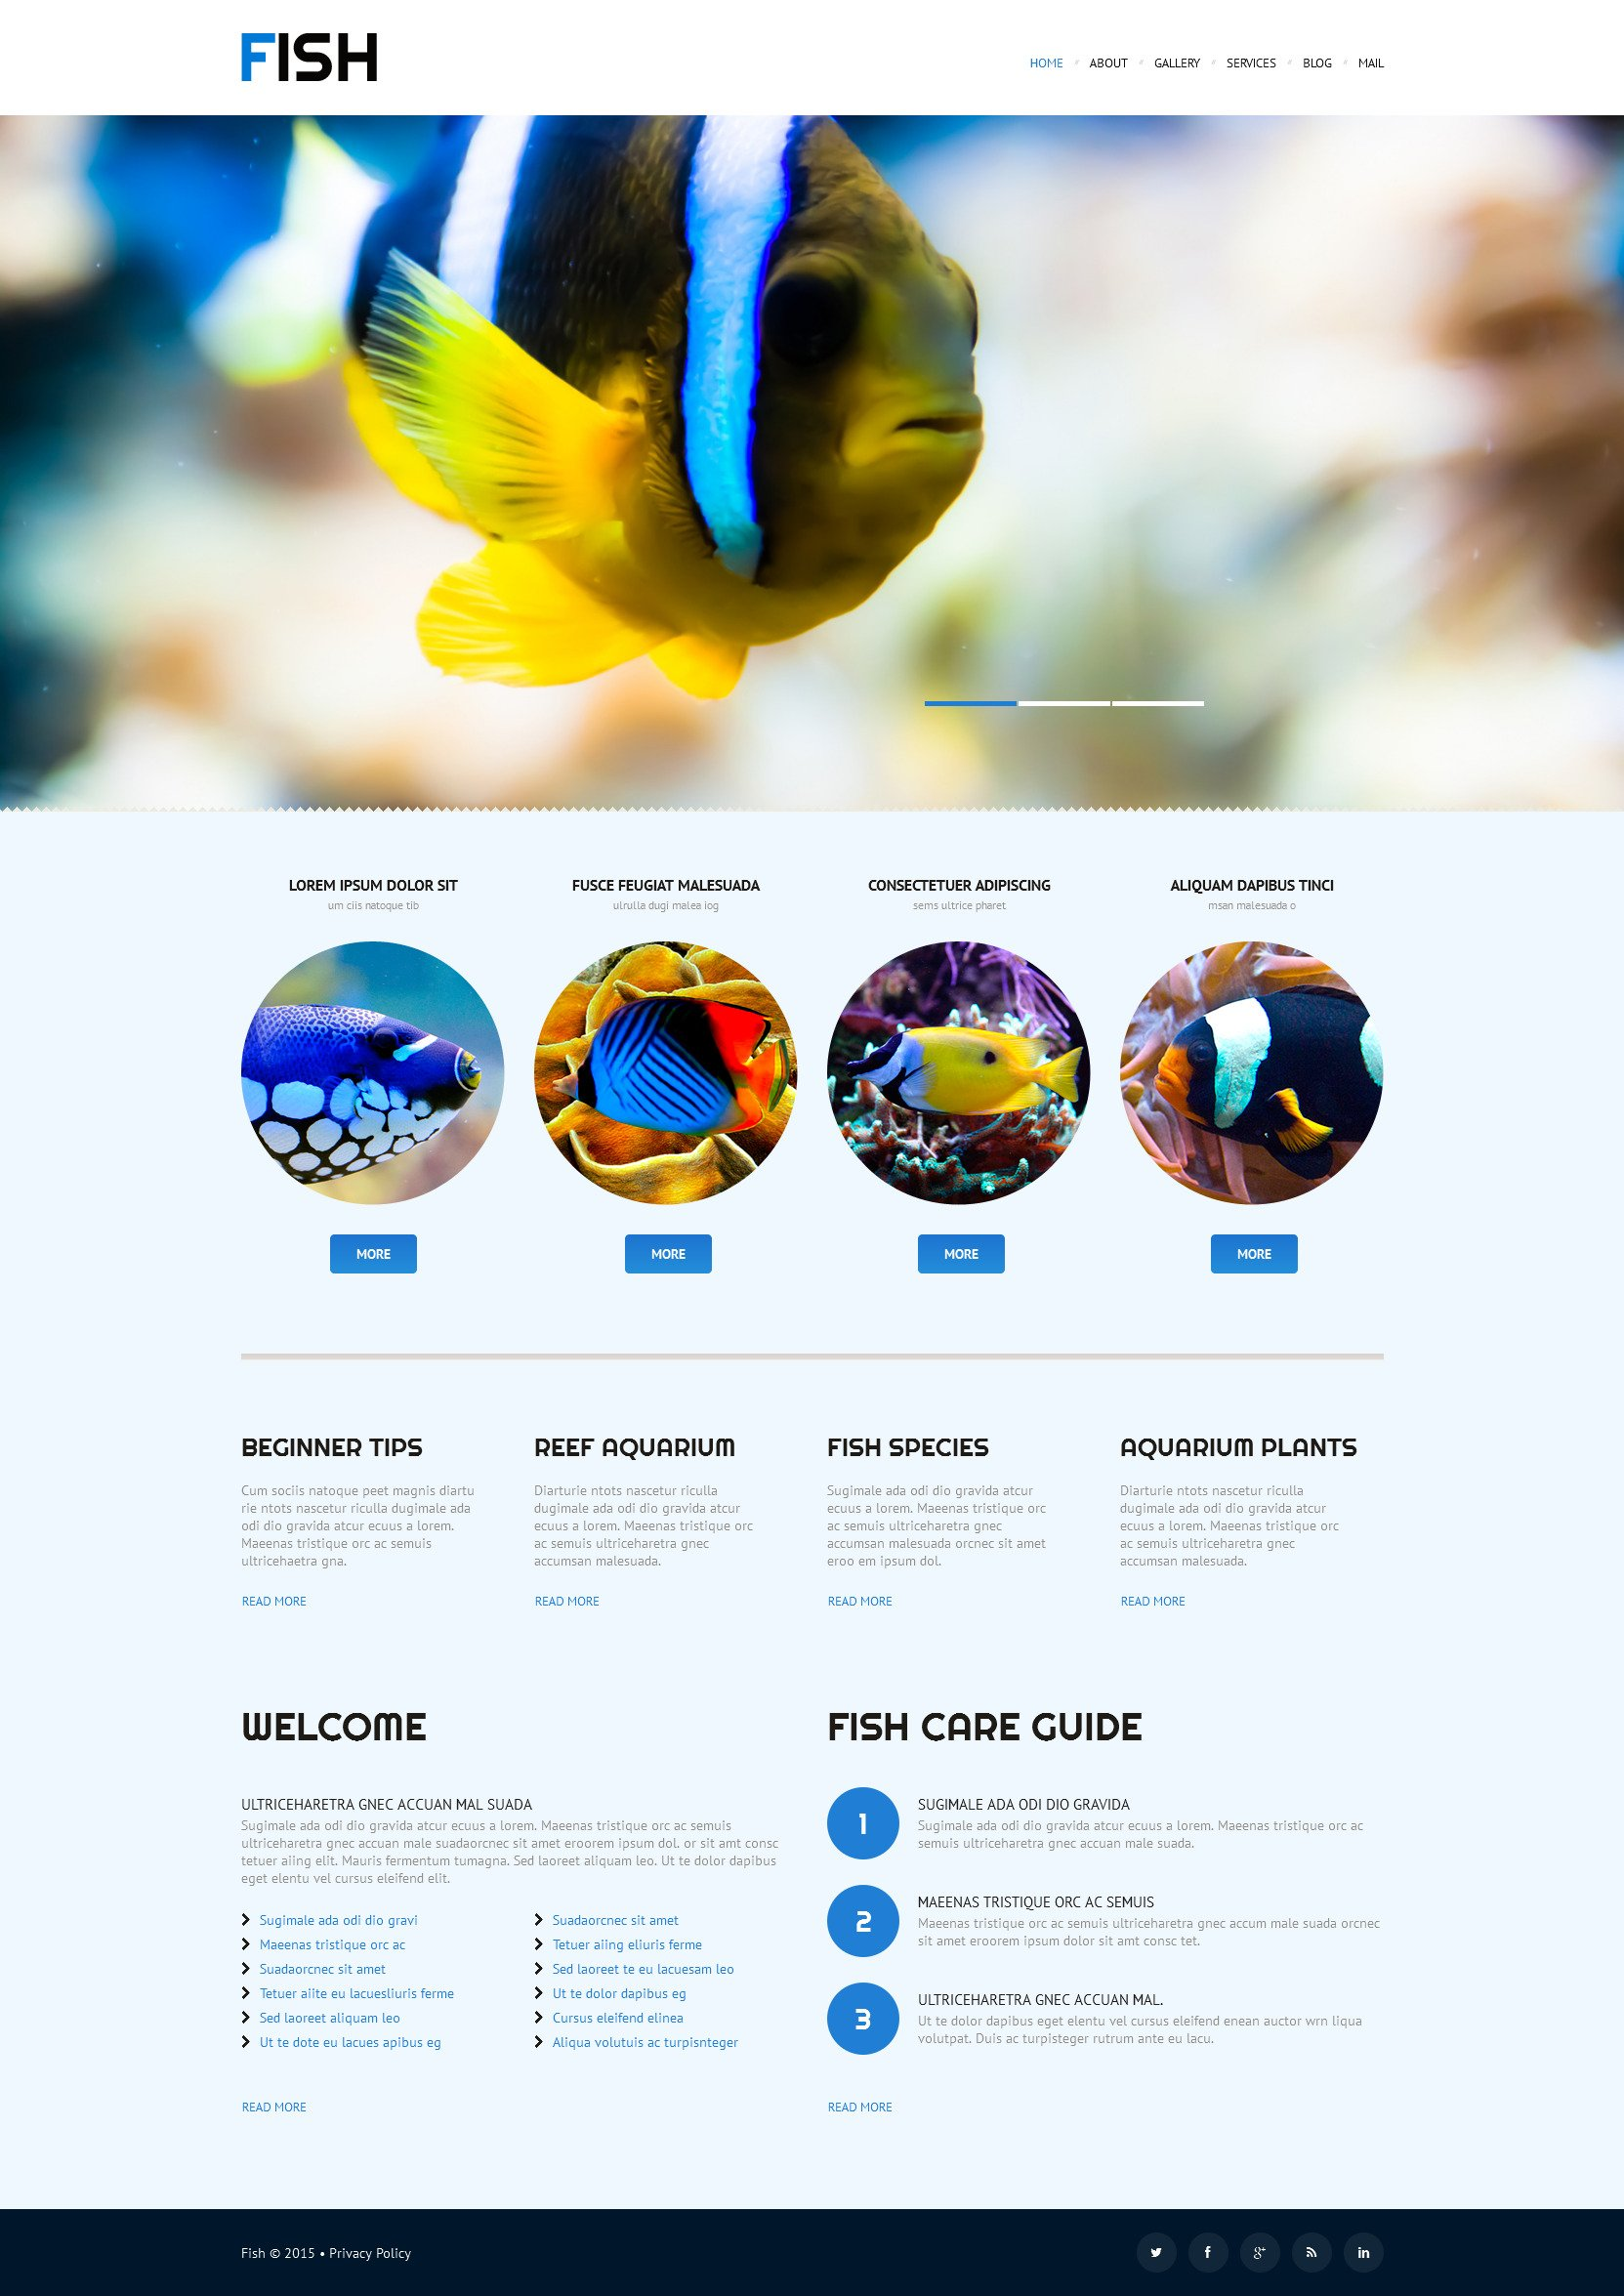 The Fish Aquarius WordPress Design 53000, one of the best WordPress themes of its kind (animals & pets, most popular), also known as fish aquarius WordPress template, aquarium WordPress template, aqua WordPress template, underwater WordPress template, aquatic WordPress template, zoo WordPress template, sea-horse WordPress template, dolphins WordPress template, water WordPress template, fishes WordPress template, starfish WordPress template, tortoise WordPress template, photos WordPress template, gallery WordPress template, life WordPress template, show WordPress template, preserve WordPress template, events WordPress template, visitors WordPress template, educational program WordPress template, aquarium WordPress template, coral and related with fish aquarius, aquarium, aqua, underwater, aquatic, zoo, sea-horse, dolphins, water, fishes, starfish, tortoise, photos, gallery, life, show, preserve, events, visitors, educational program, aquarium, coral, etc.